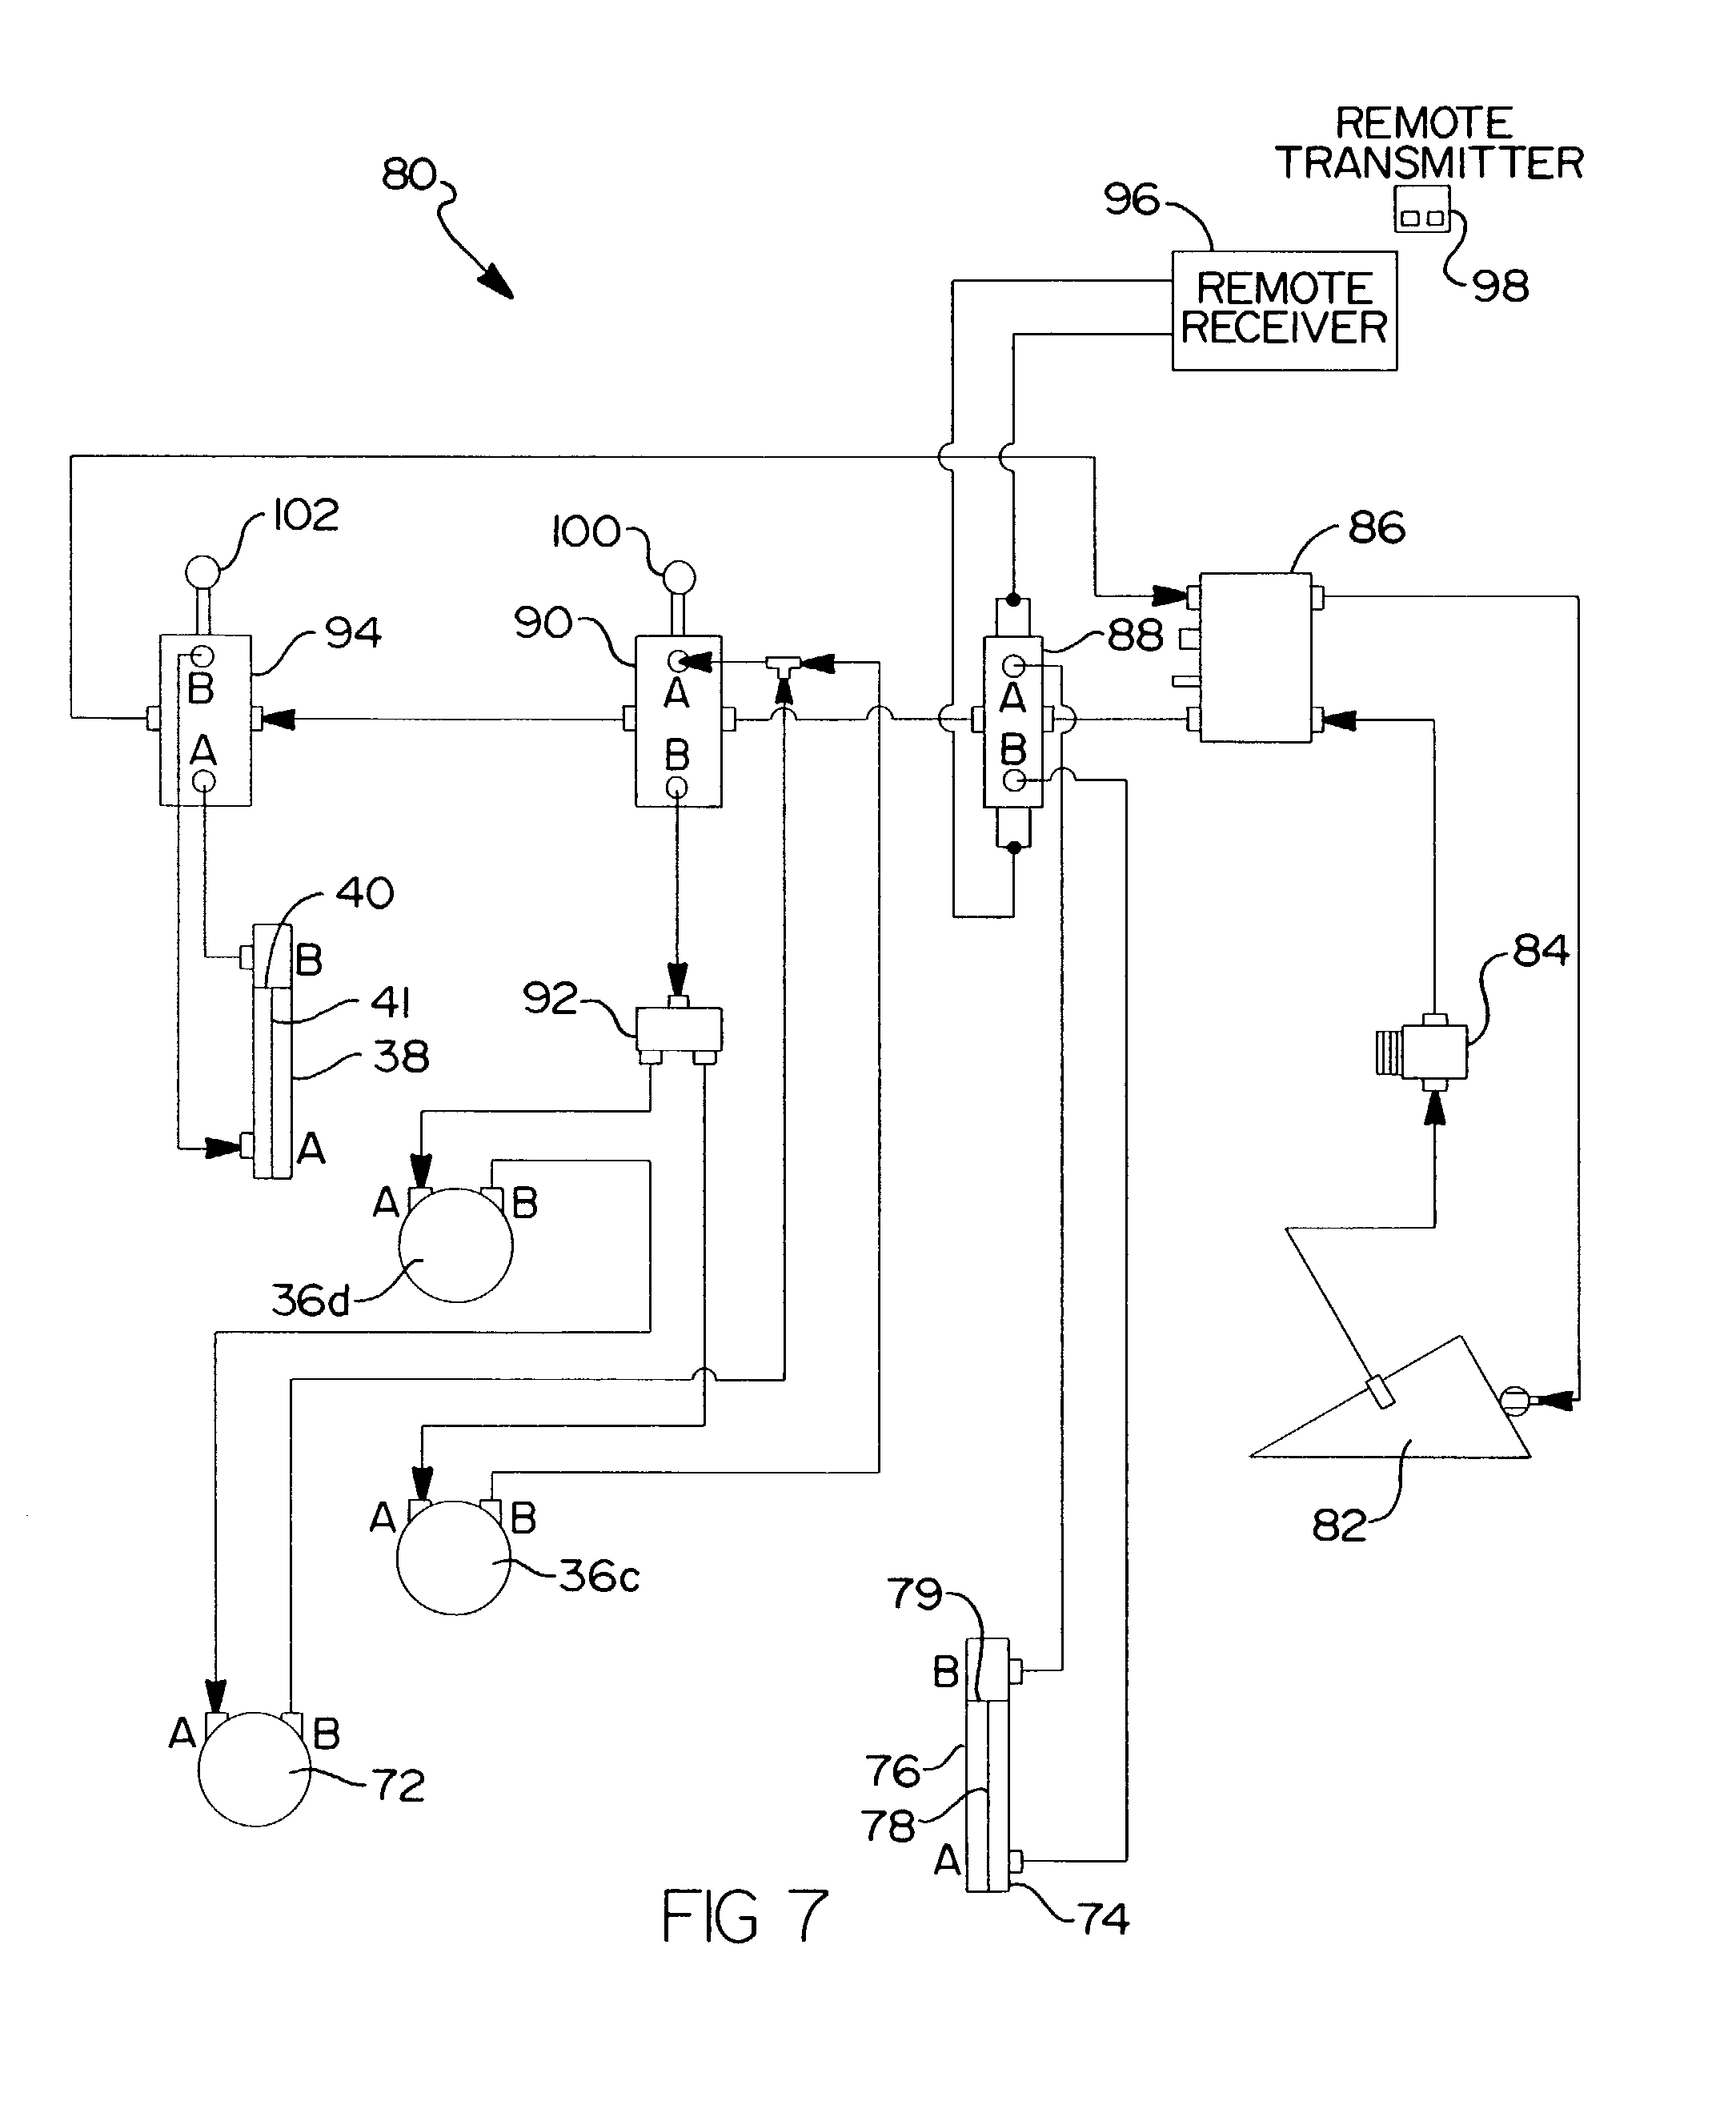 Altec Hydraulic System Schematic Lift Diagram For Wiring